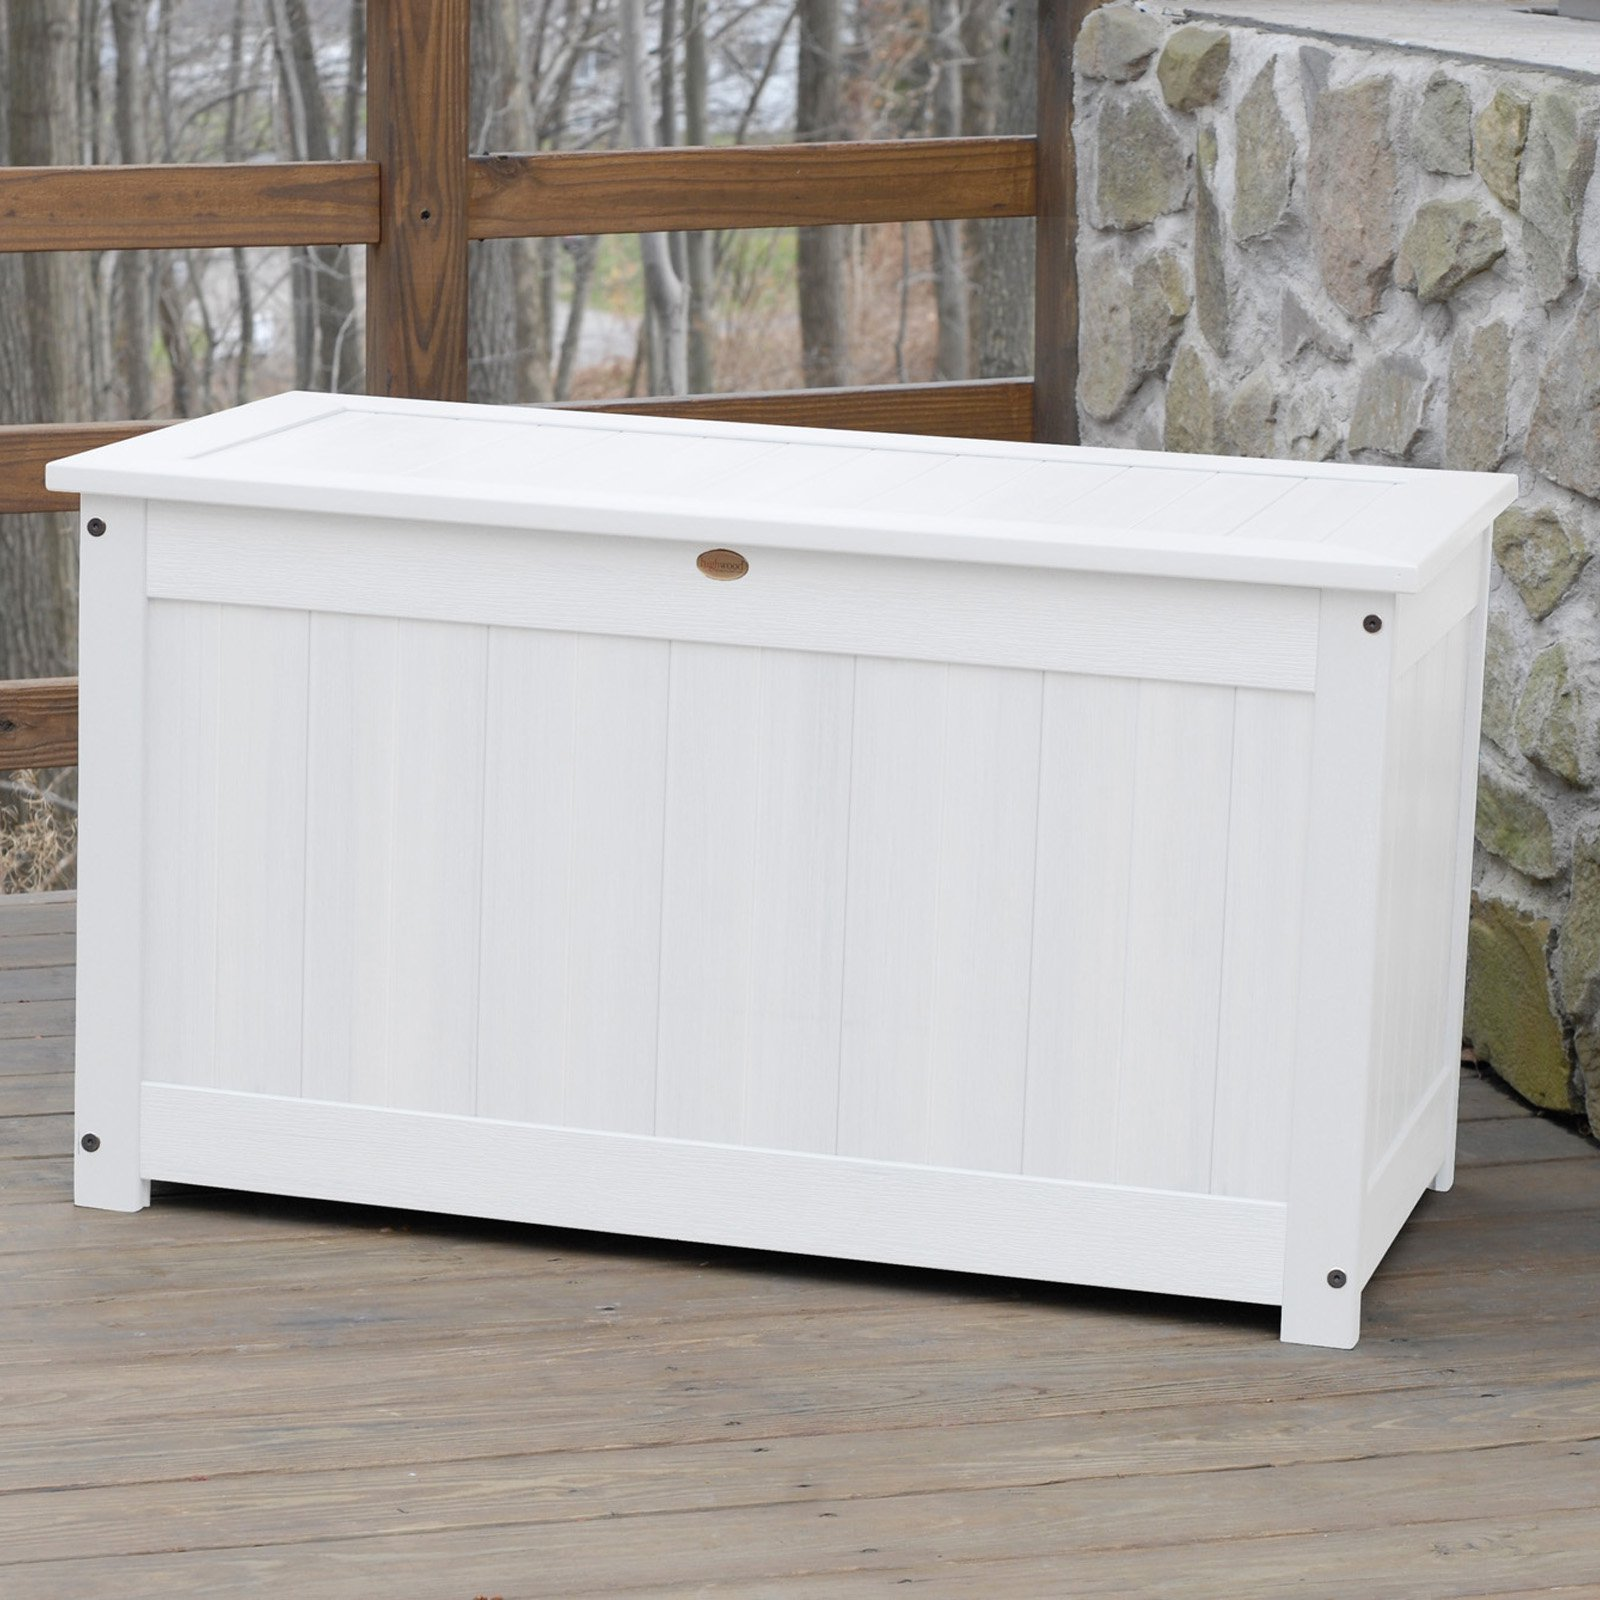 Rubbermaid Storage Box | Rubbermaid Storage Bench | Rubbermaid Patio Table